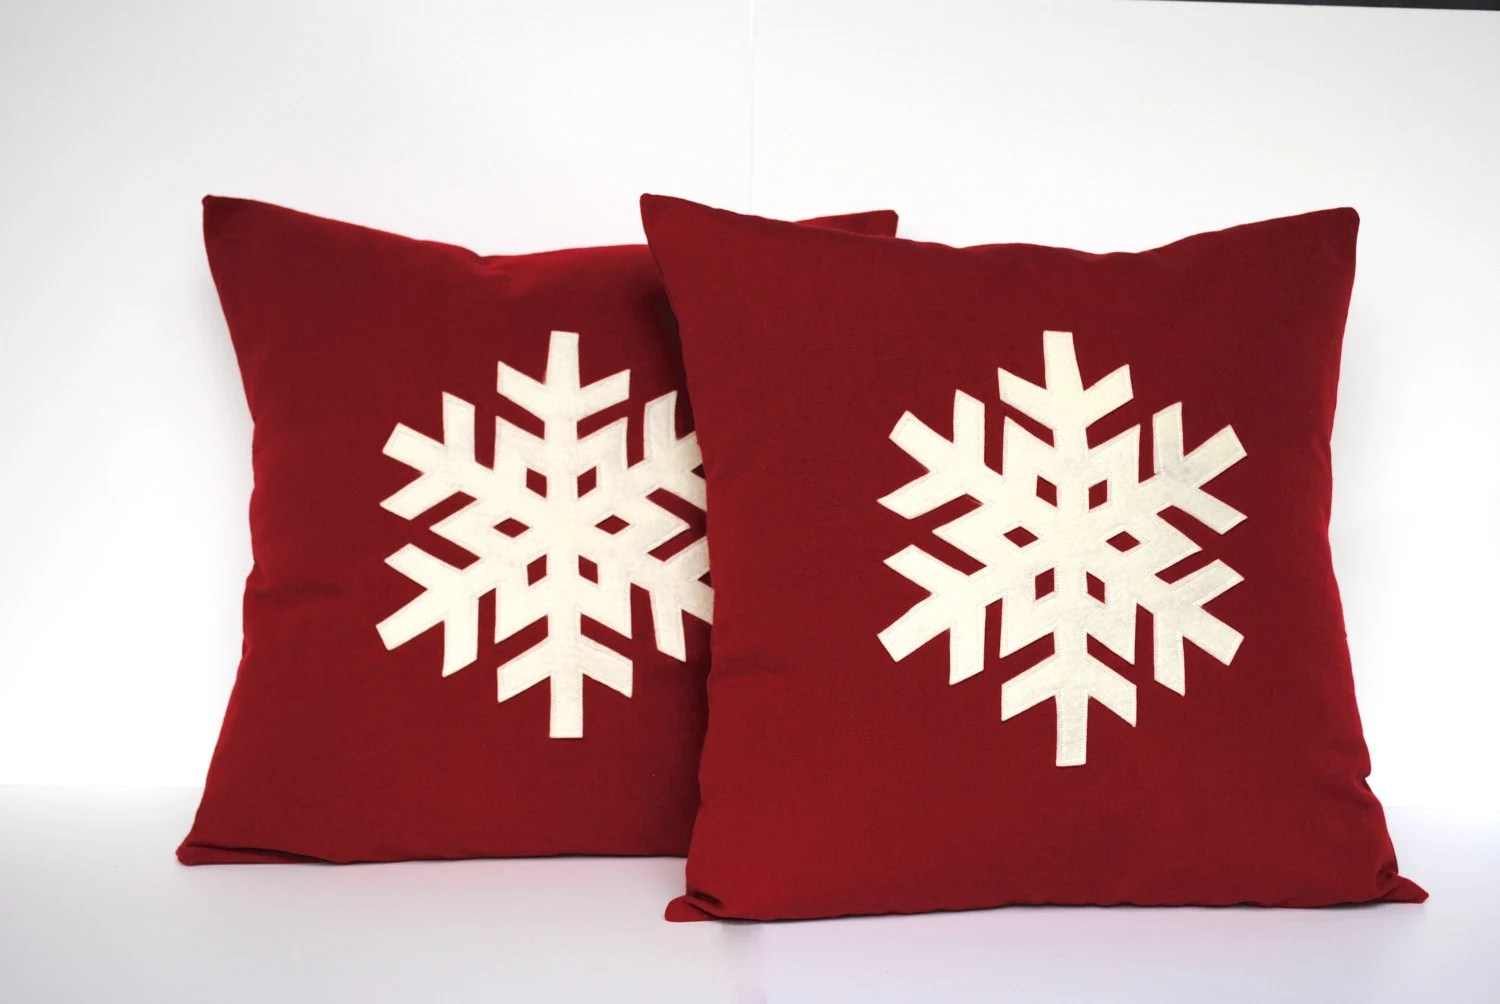 Cushion Covers Christmas Two Snowflake Christmas Pillow Covers By Thatdutchgirlpillows